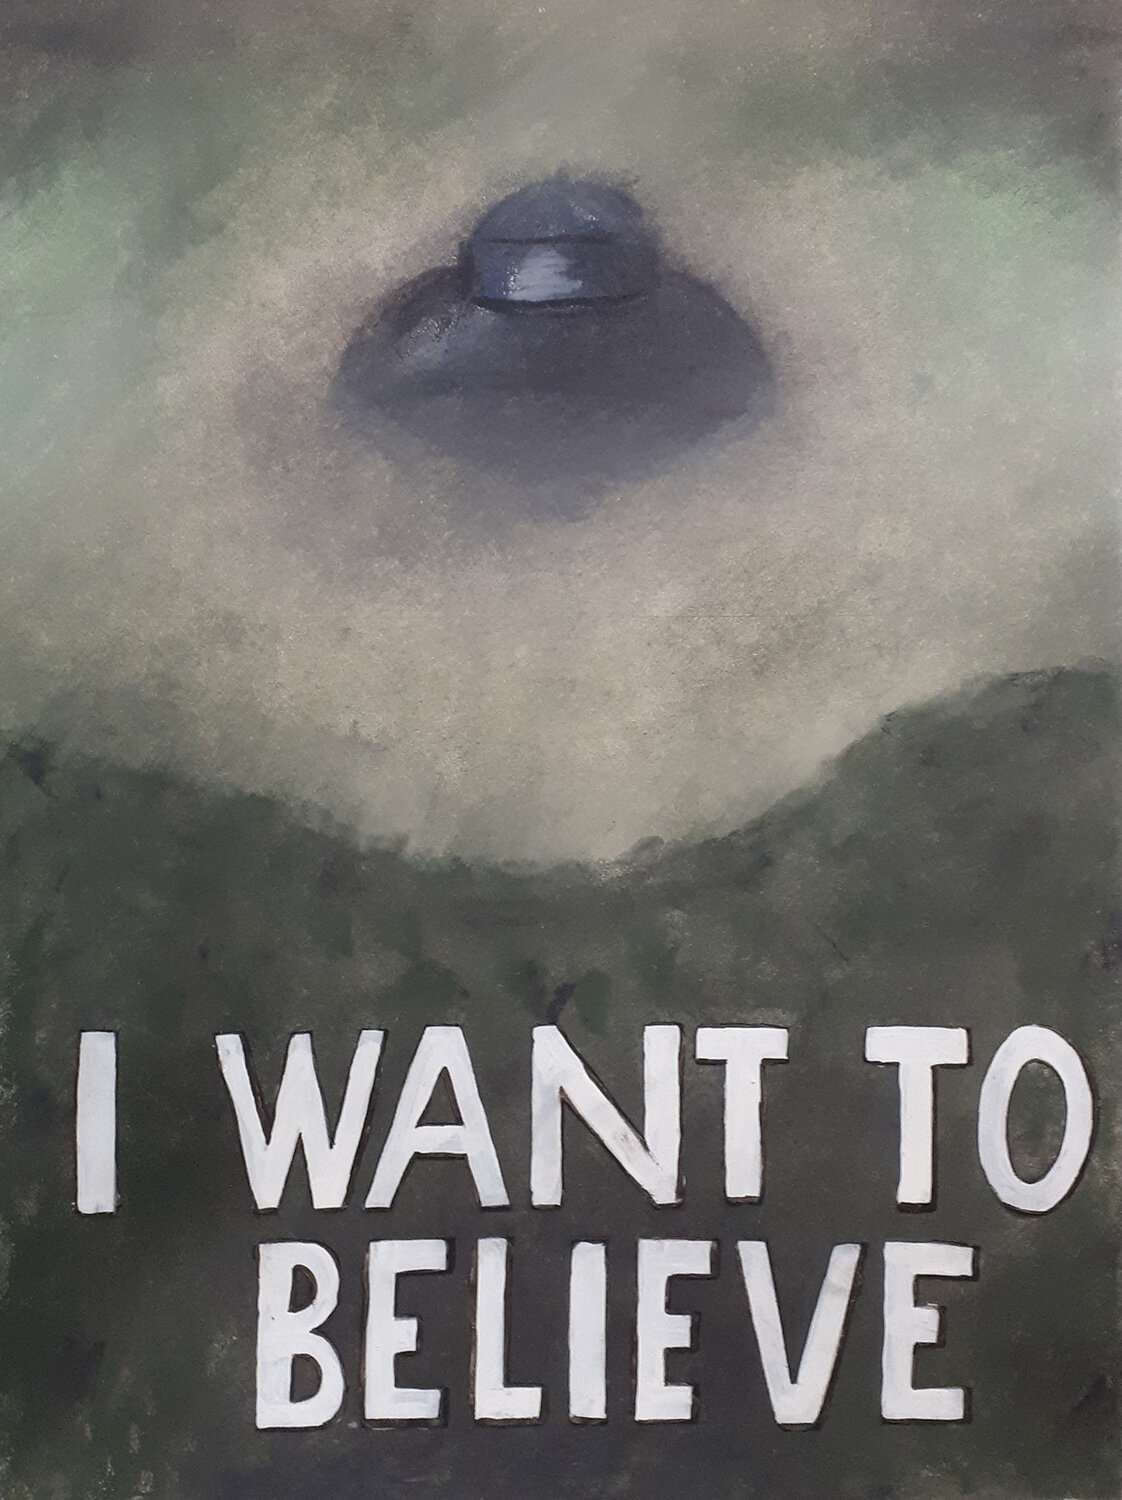 Akte X: I want to believe (1998/99)